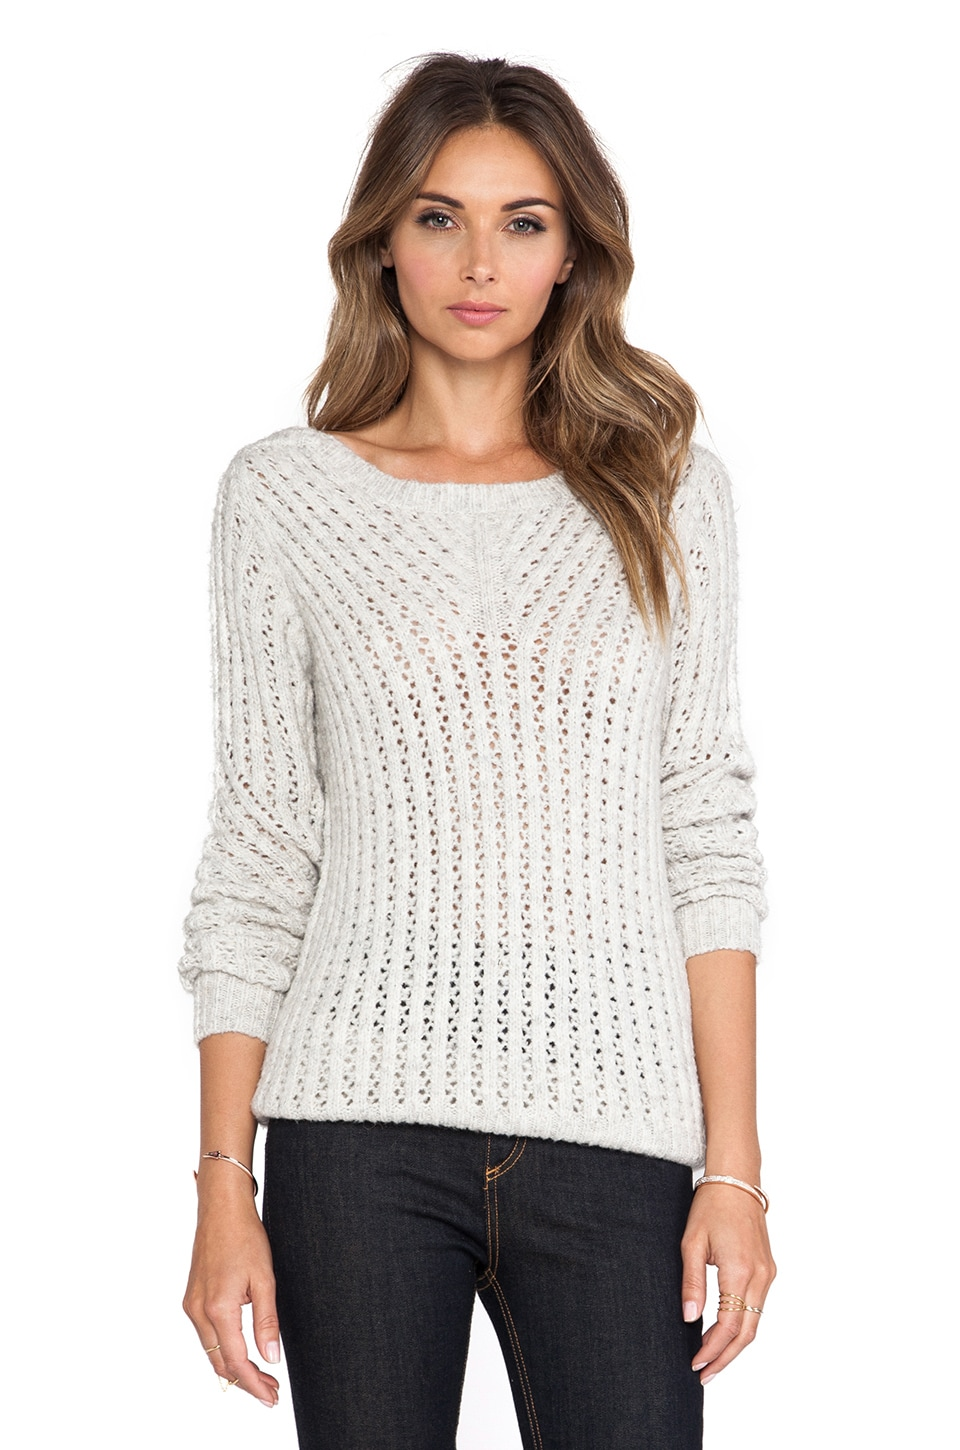 Line Wicker Sweater in Ivory